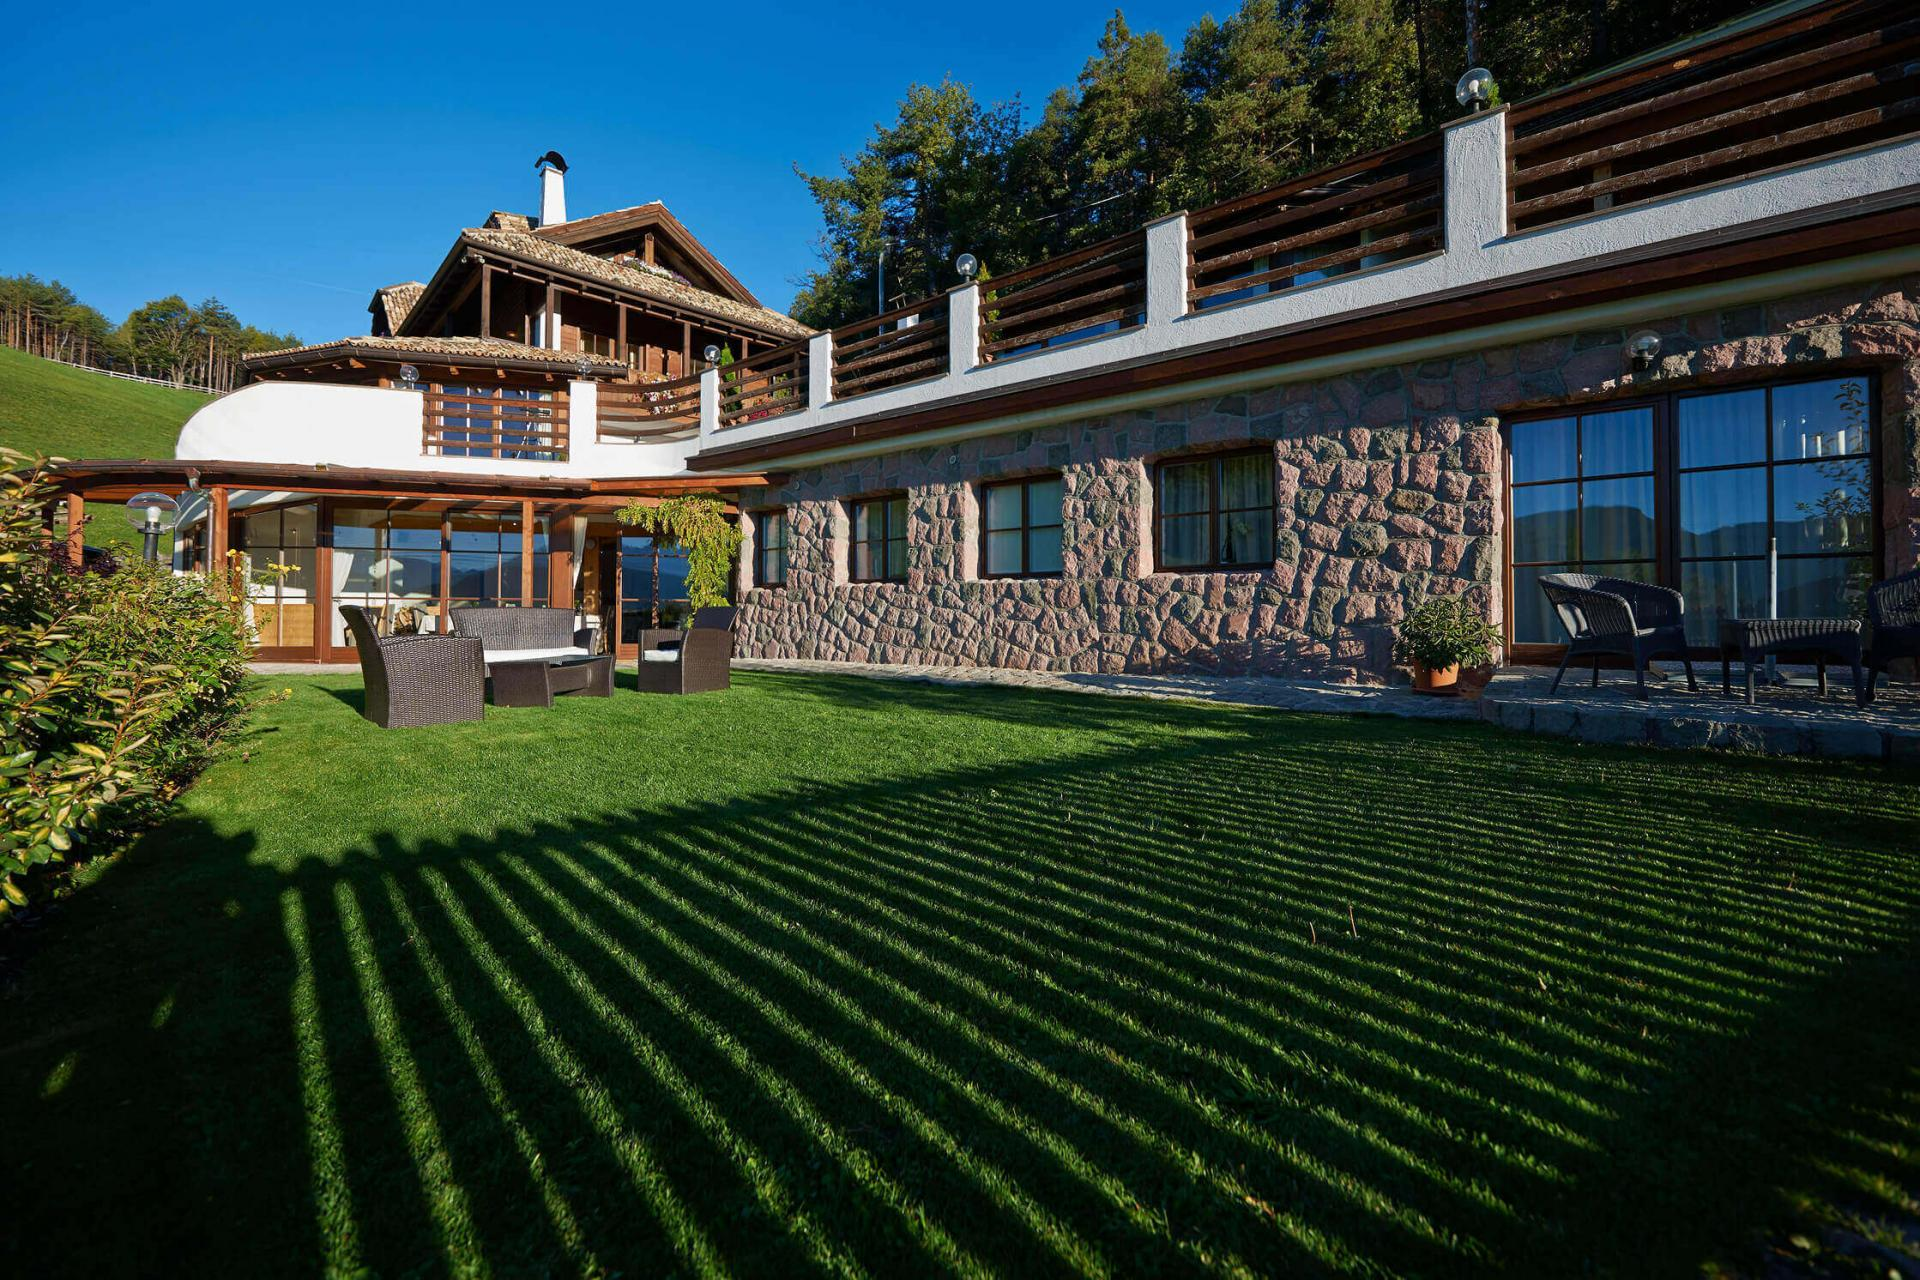 Chalet South Tyrol Book the alpine House with Garden